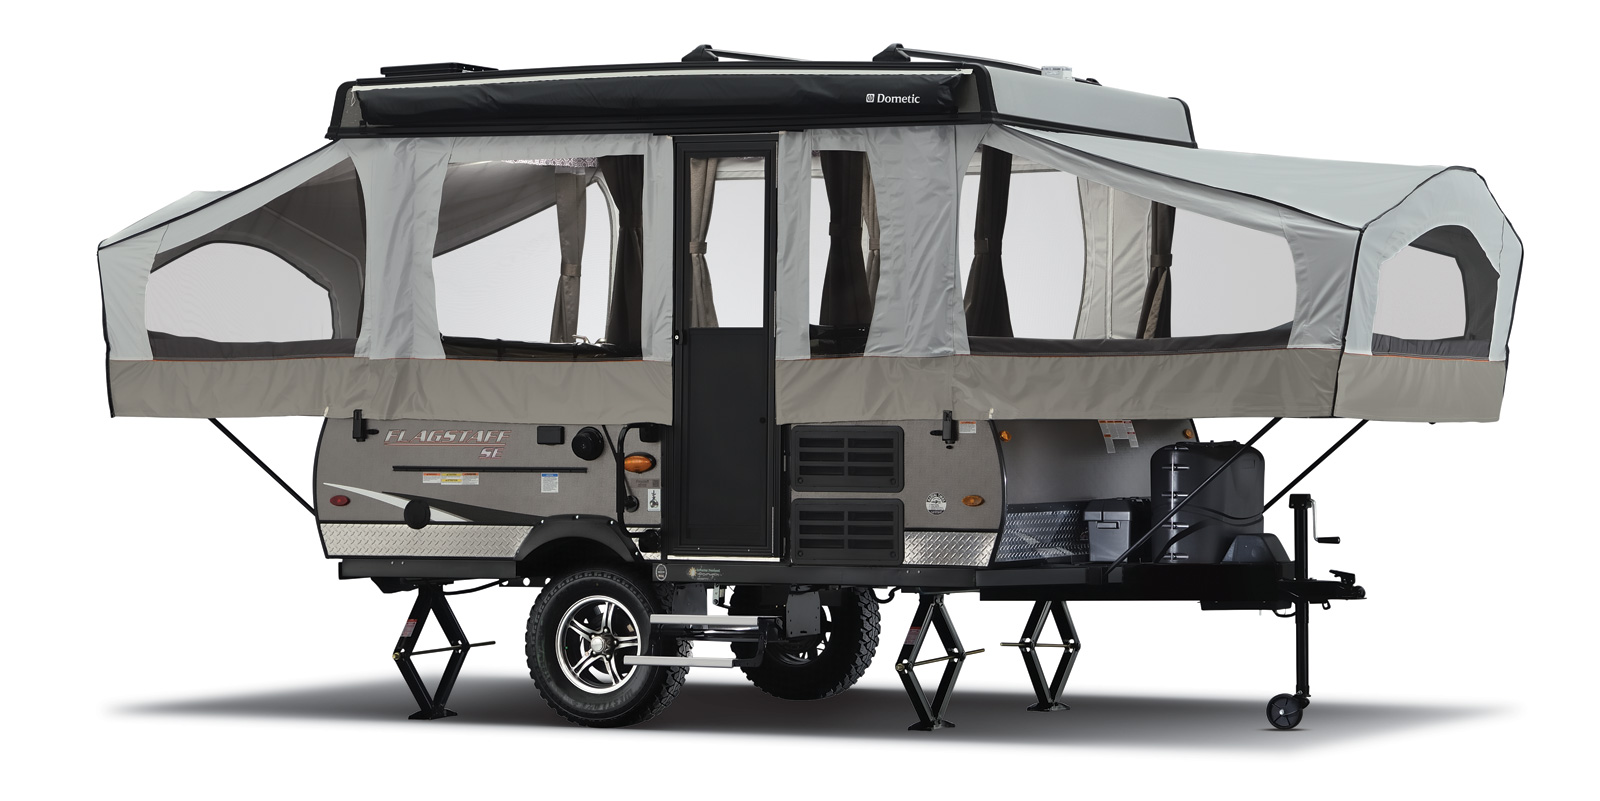 Forest River Flagstaff Sports Enthusiast Package family pop up camper that can handle some dirt roads budget friendly